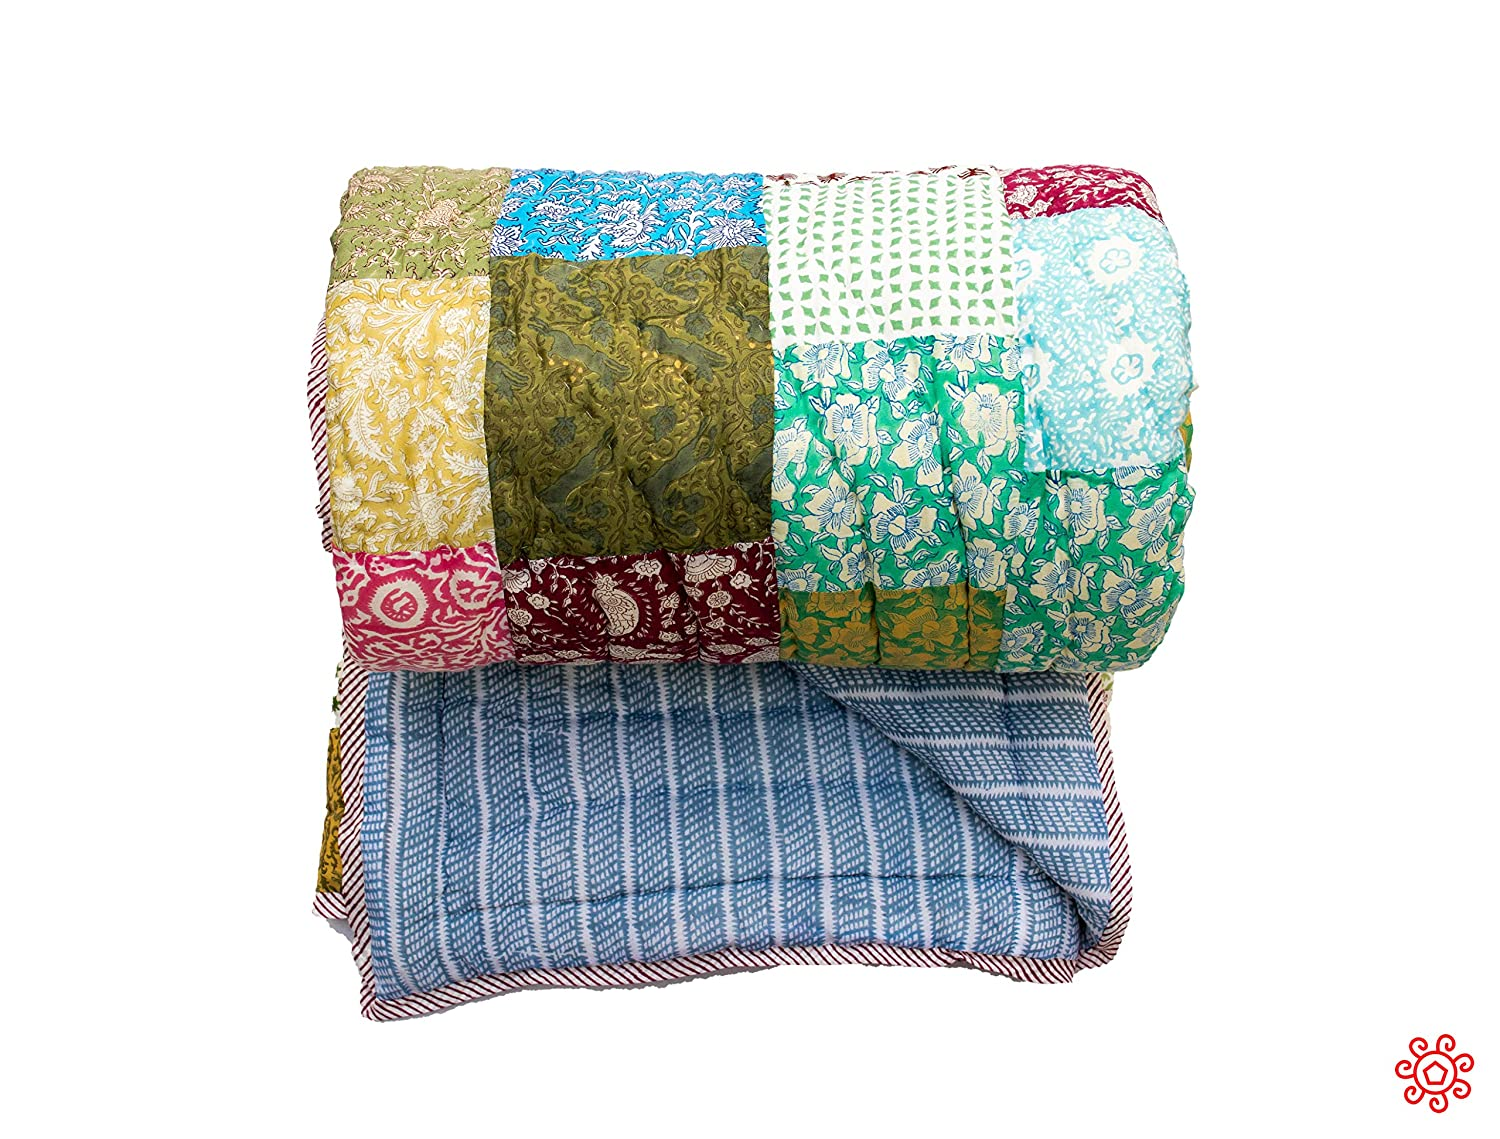 Image of All New Roysha 2020 Queen Quilt Collection - 100 Percent Handmade Patchwork Quilt - Qpw/209 Home and Kitchen